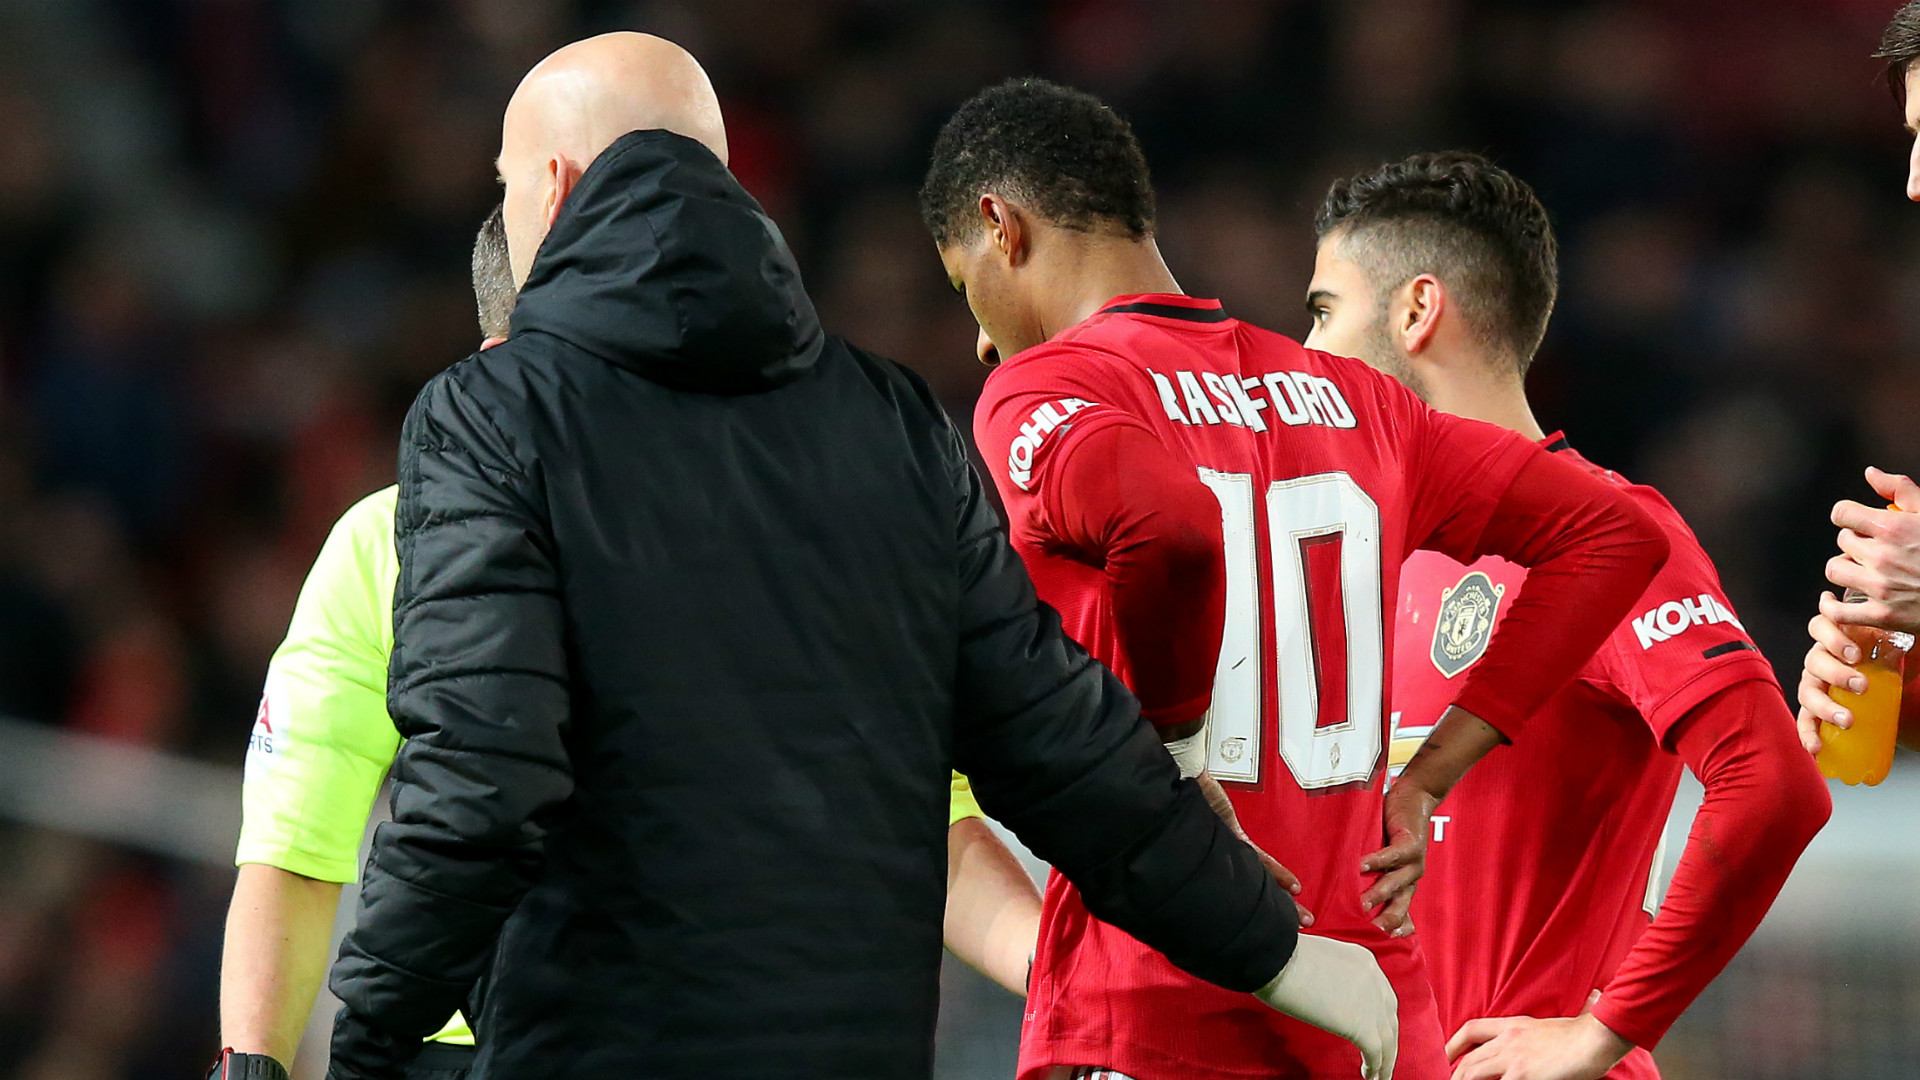 Rashford 'gutted' with back injury that could rule Man Utd star out of Liverpool clash